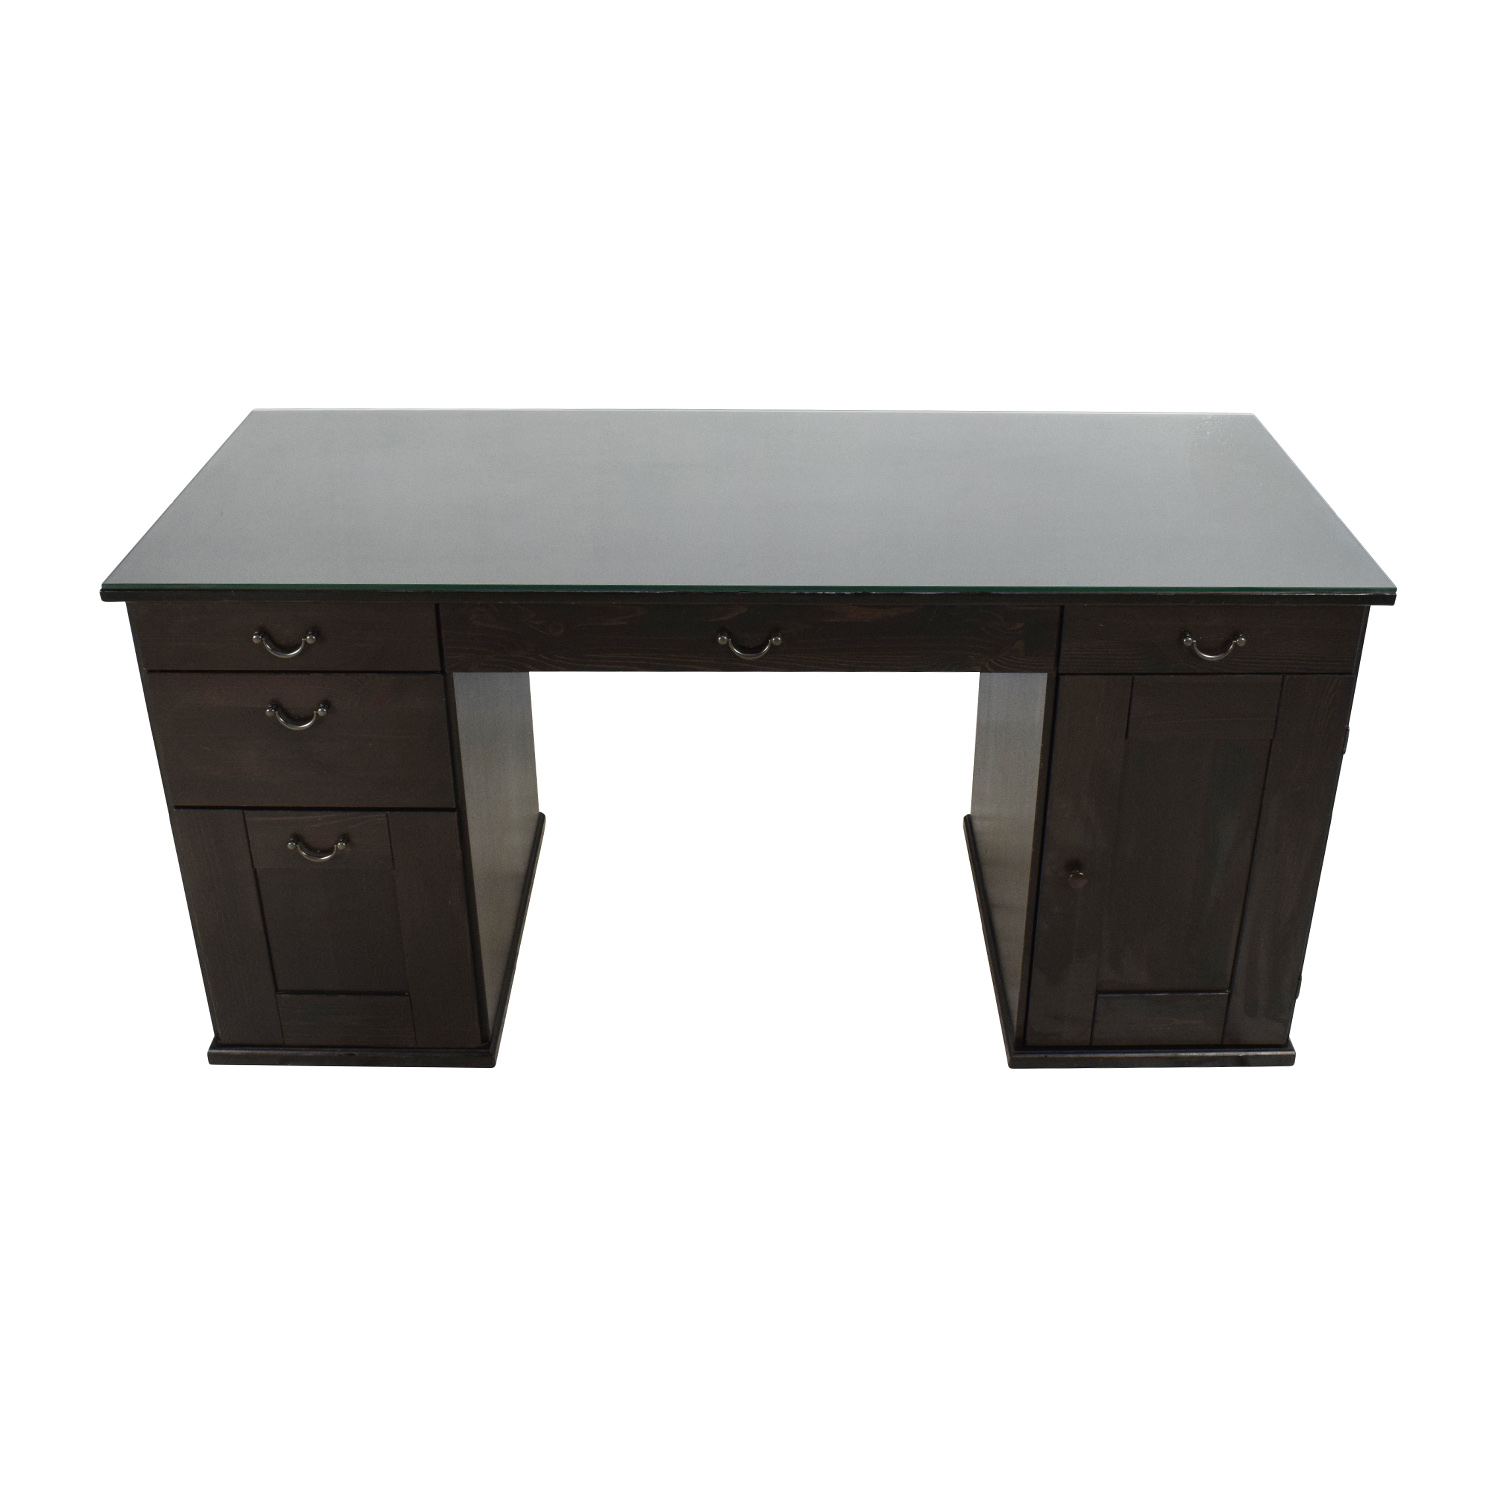 office desk ikea. Shop IKEA Glass Top Office Desk Tables Ikea O